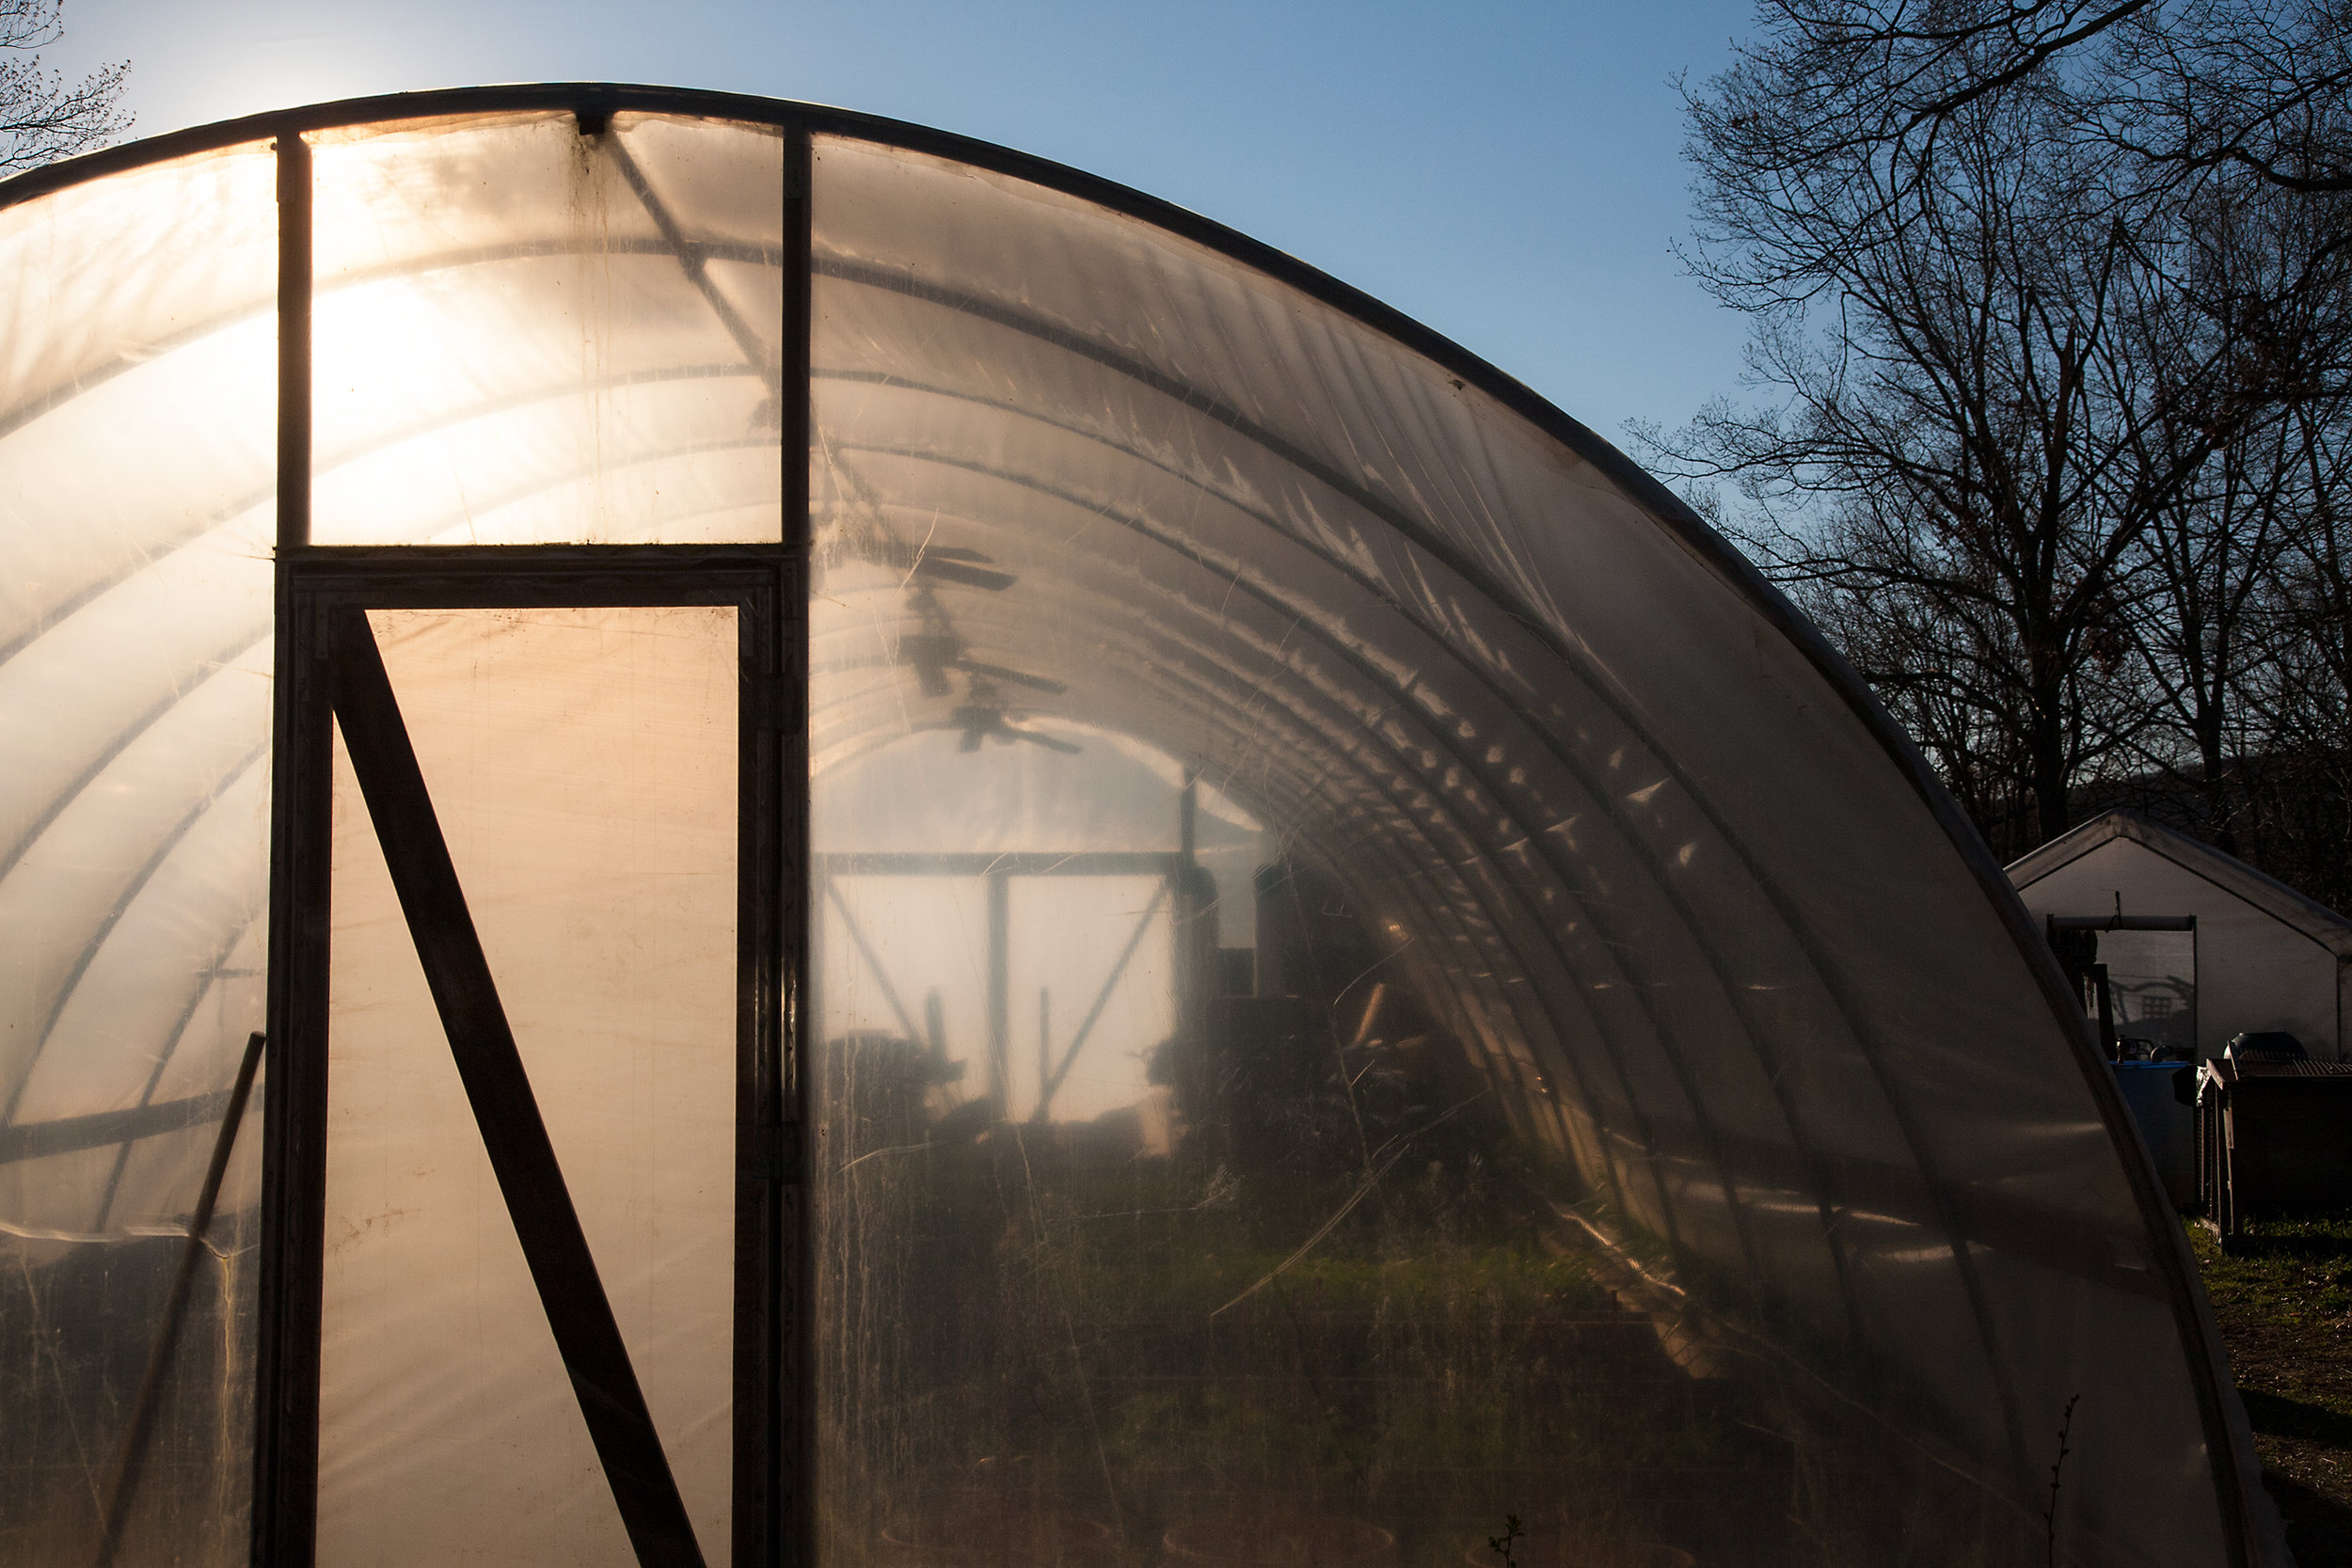 GREENHOUSE-WILTSHIRE-FARM-CT-©-JONATHAN-R.-BECKERMAN-PHOTOGRAPHY_040612.jpg